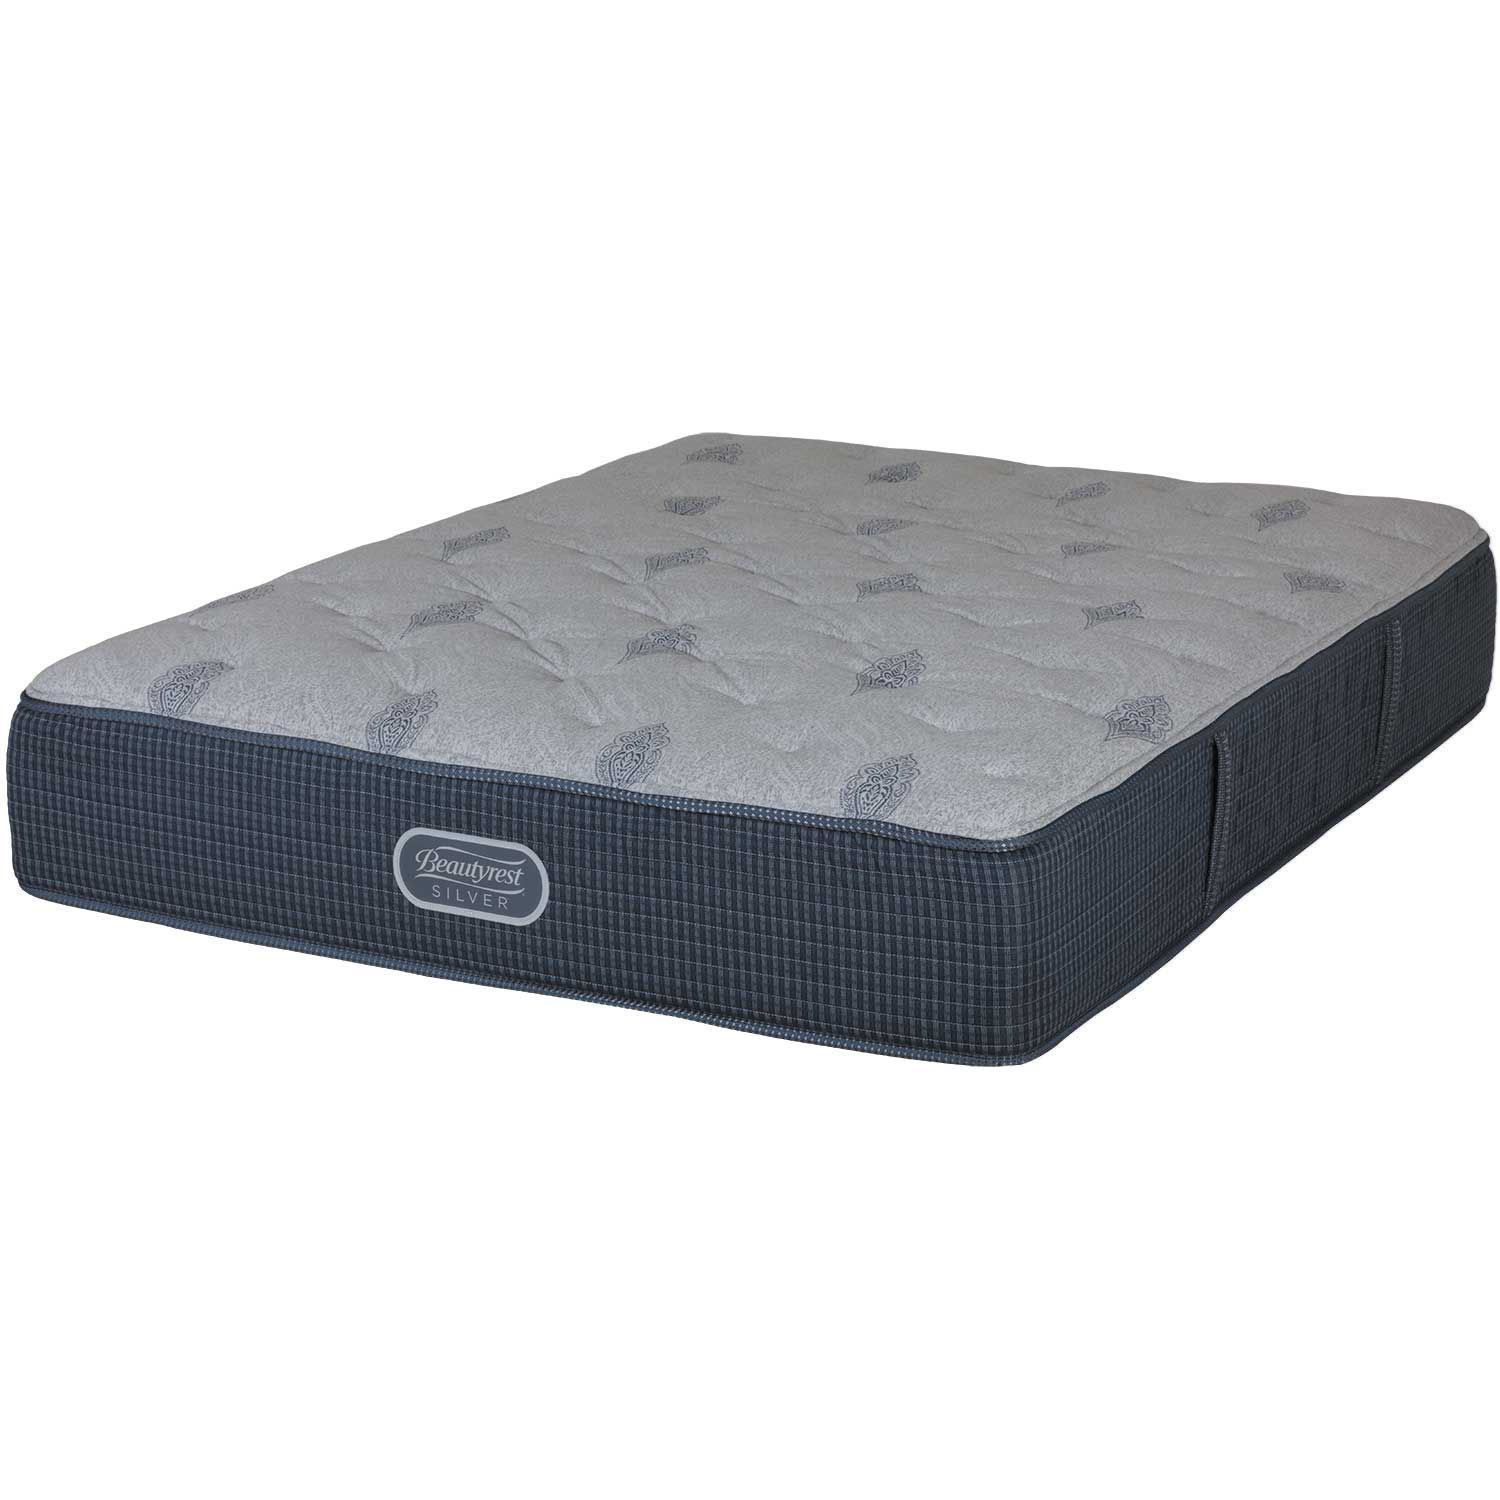 Simmons beautyrest silvana plush mattress simmons for Which mattress company is the best